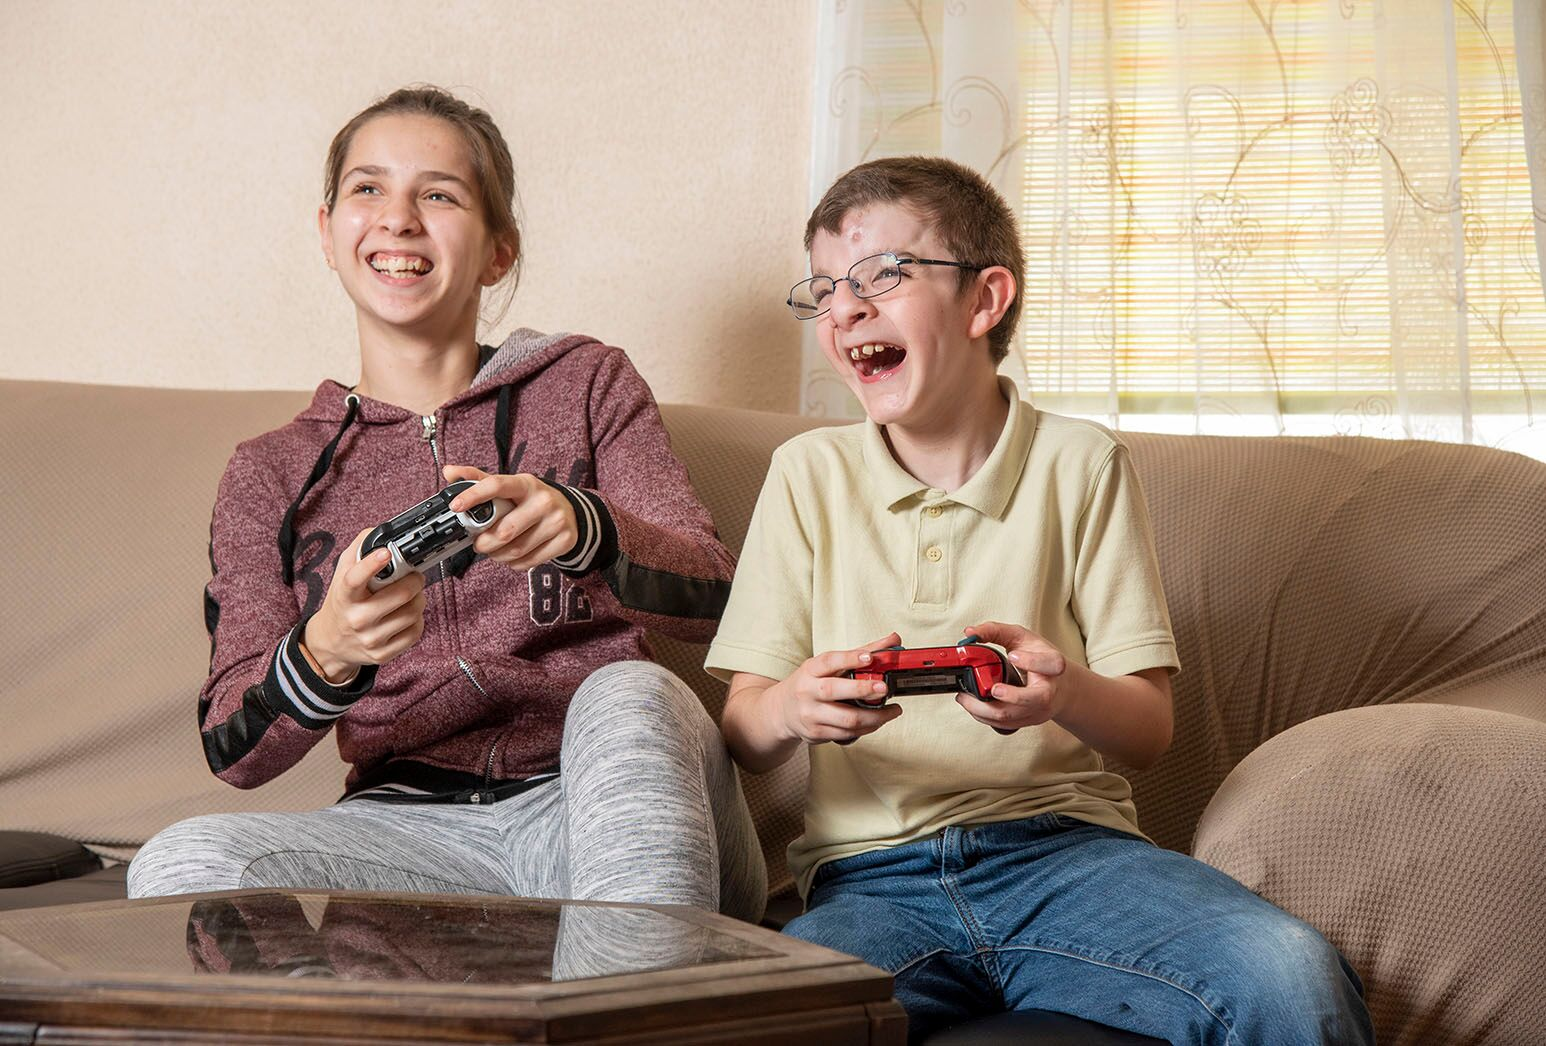 Girl with brown hair and burgundy sweatshirt and boy in yellow shirt play video games on brown couch